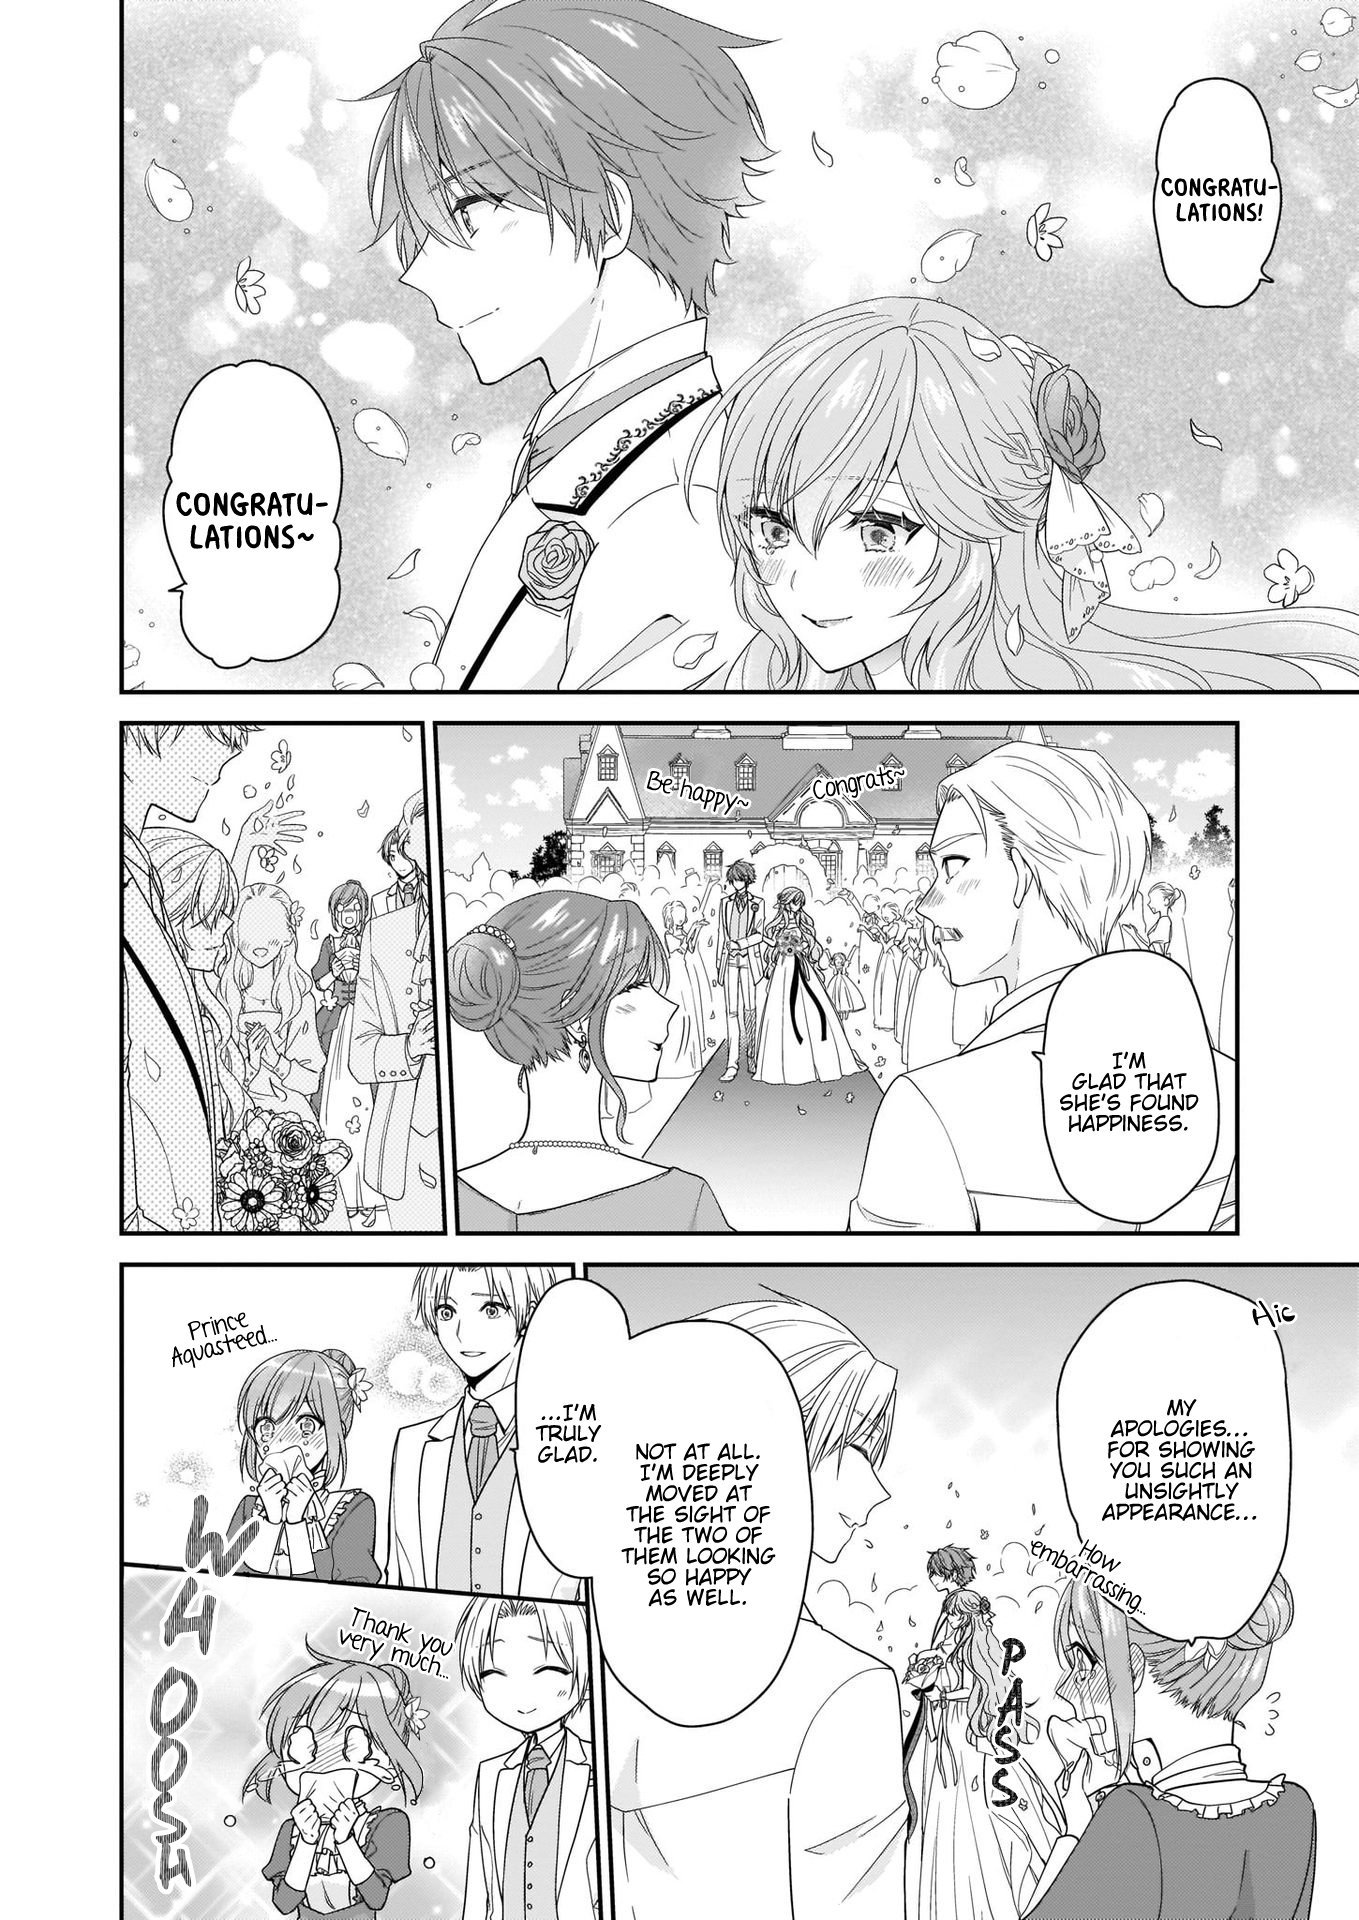 Manga The Villainess Is Adored by the Crown Prince of the Neighboring Kingdom - Chapter 23 Page 3